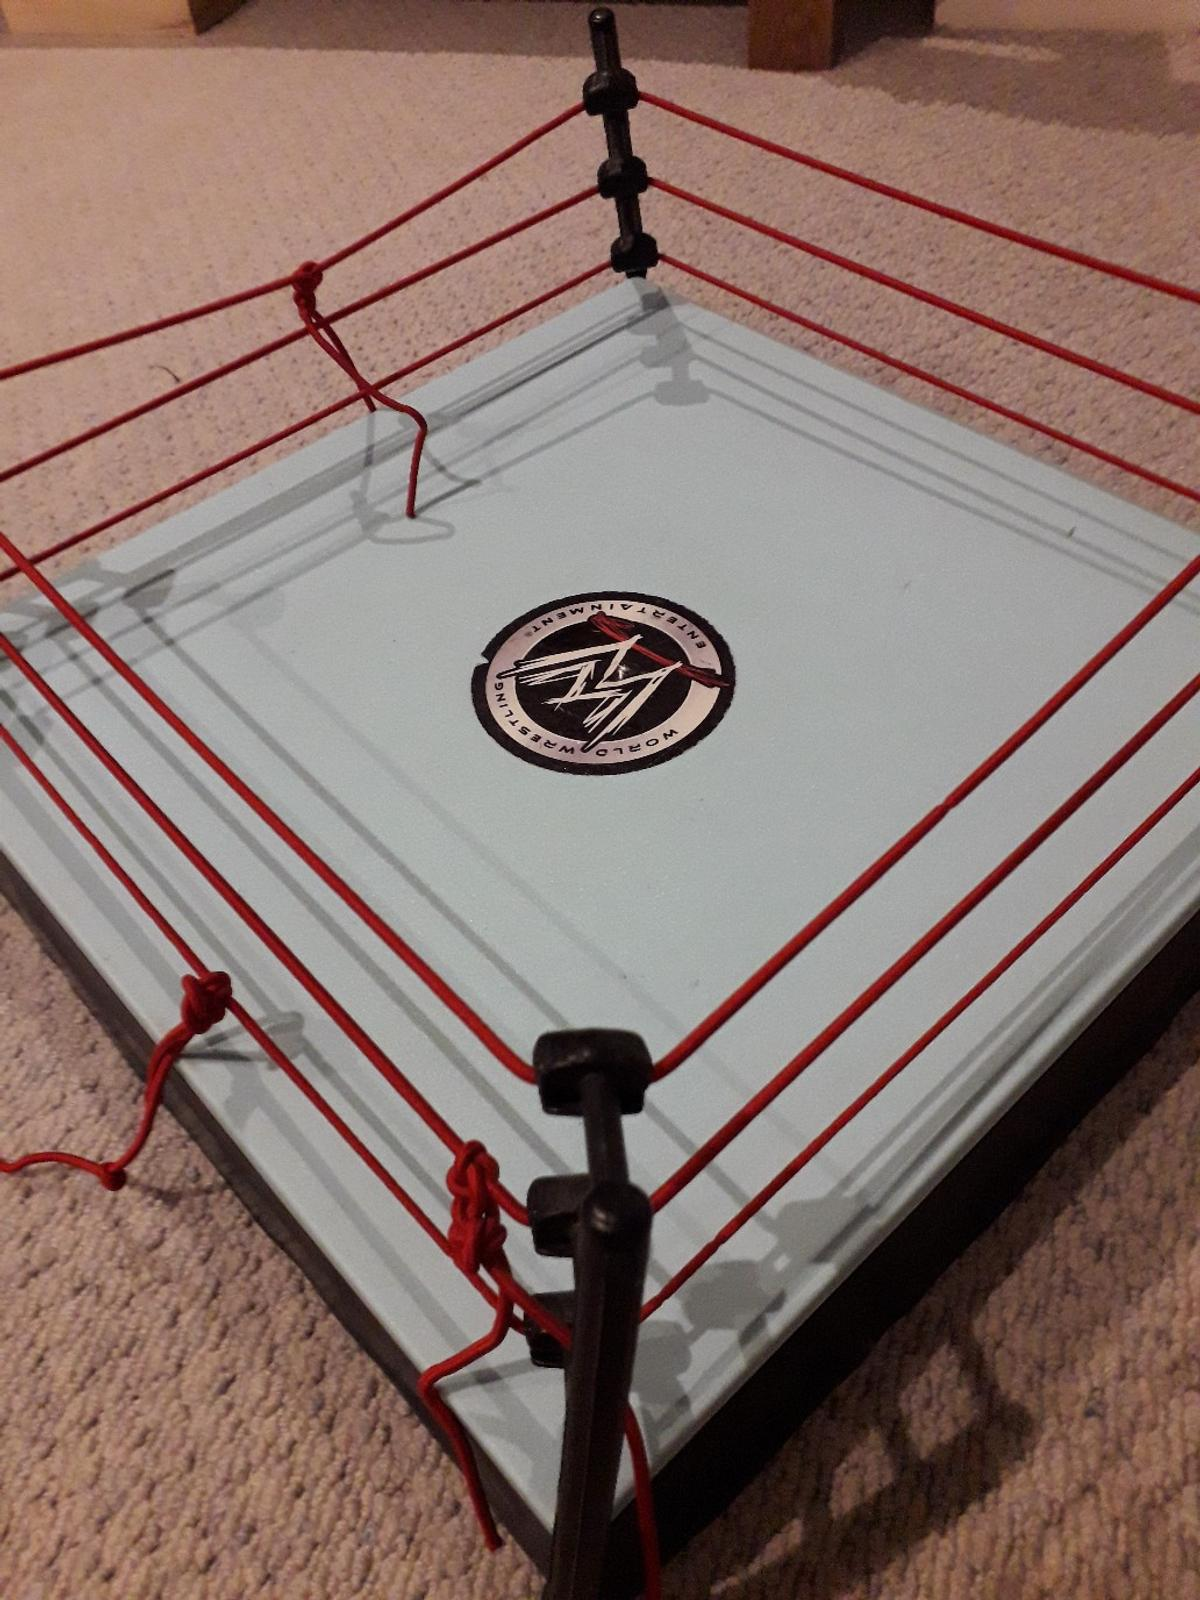 WWE wrestling ring REDUCED in HD6 Calderdale for £8 00 for